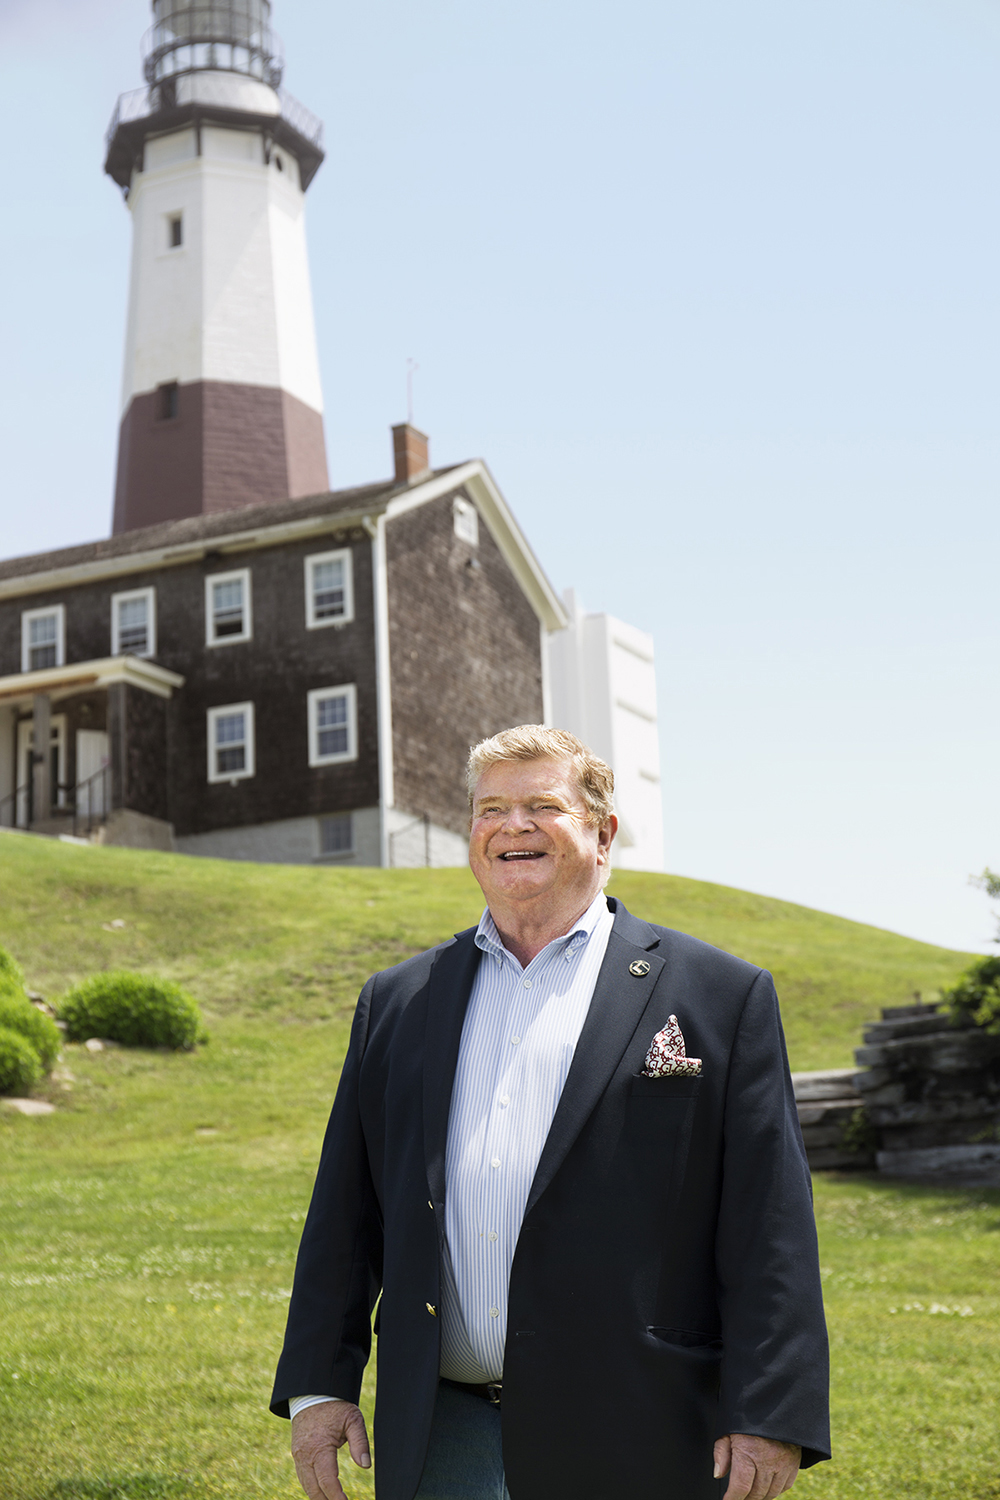 Richard Fox White, Jr. Chairperson Lighthouse Committee, Montauk Point Lighthouse